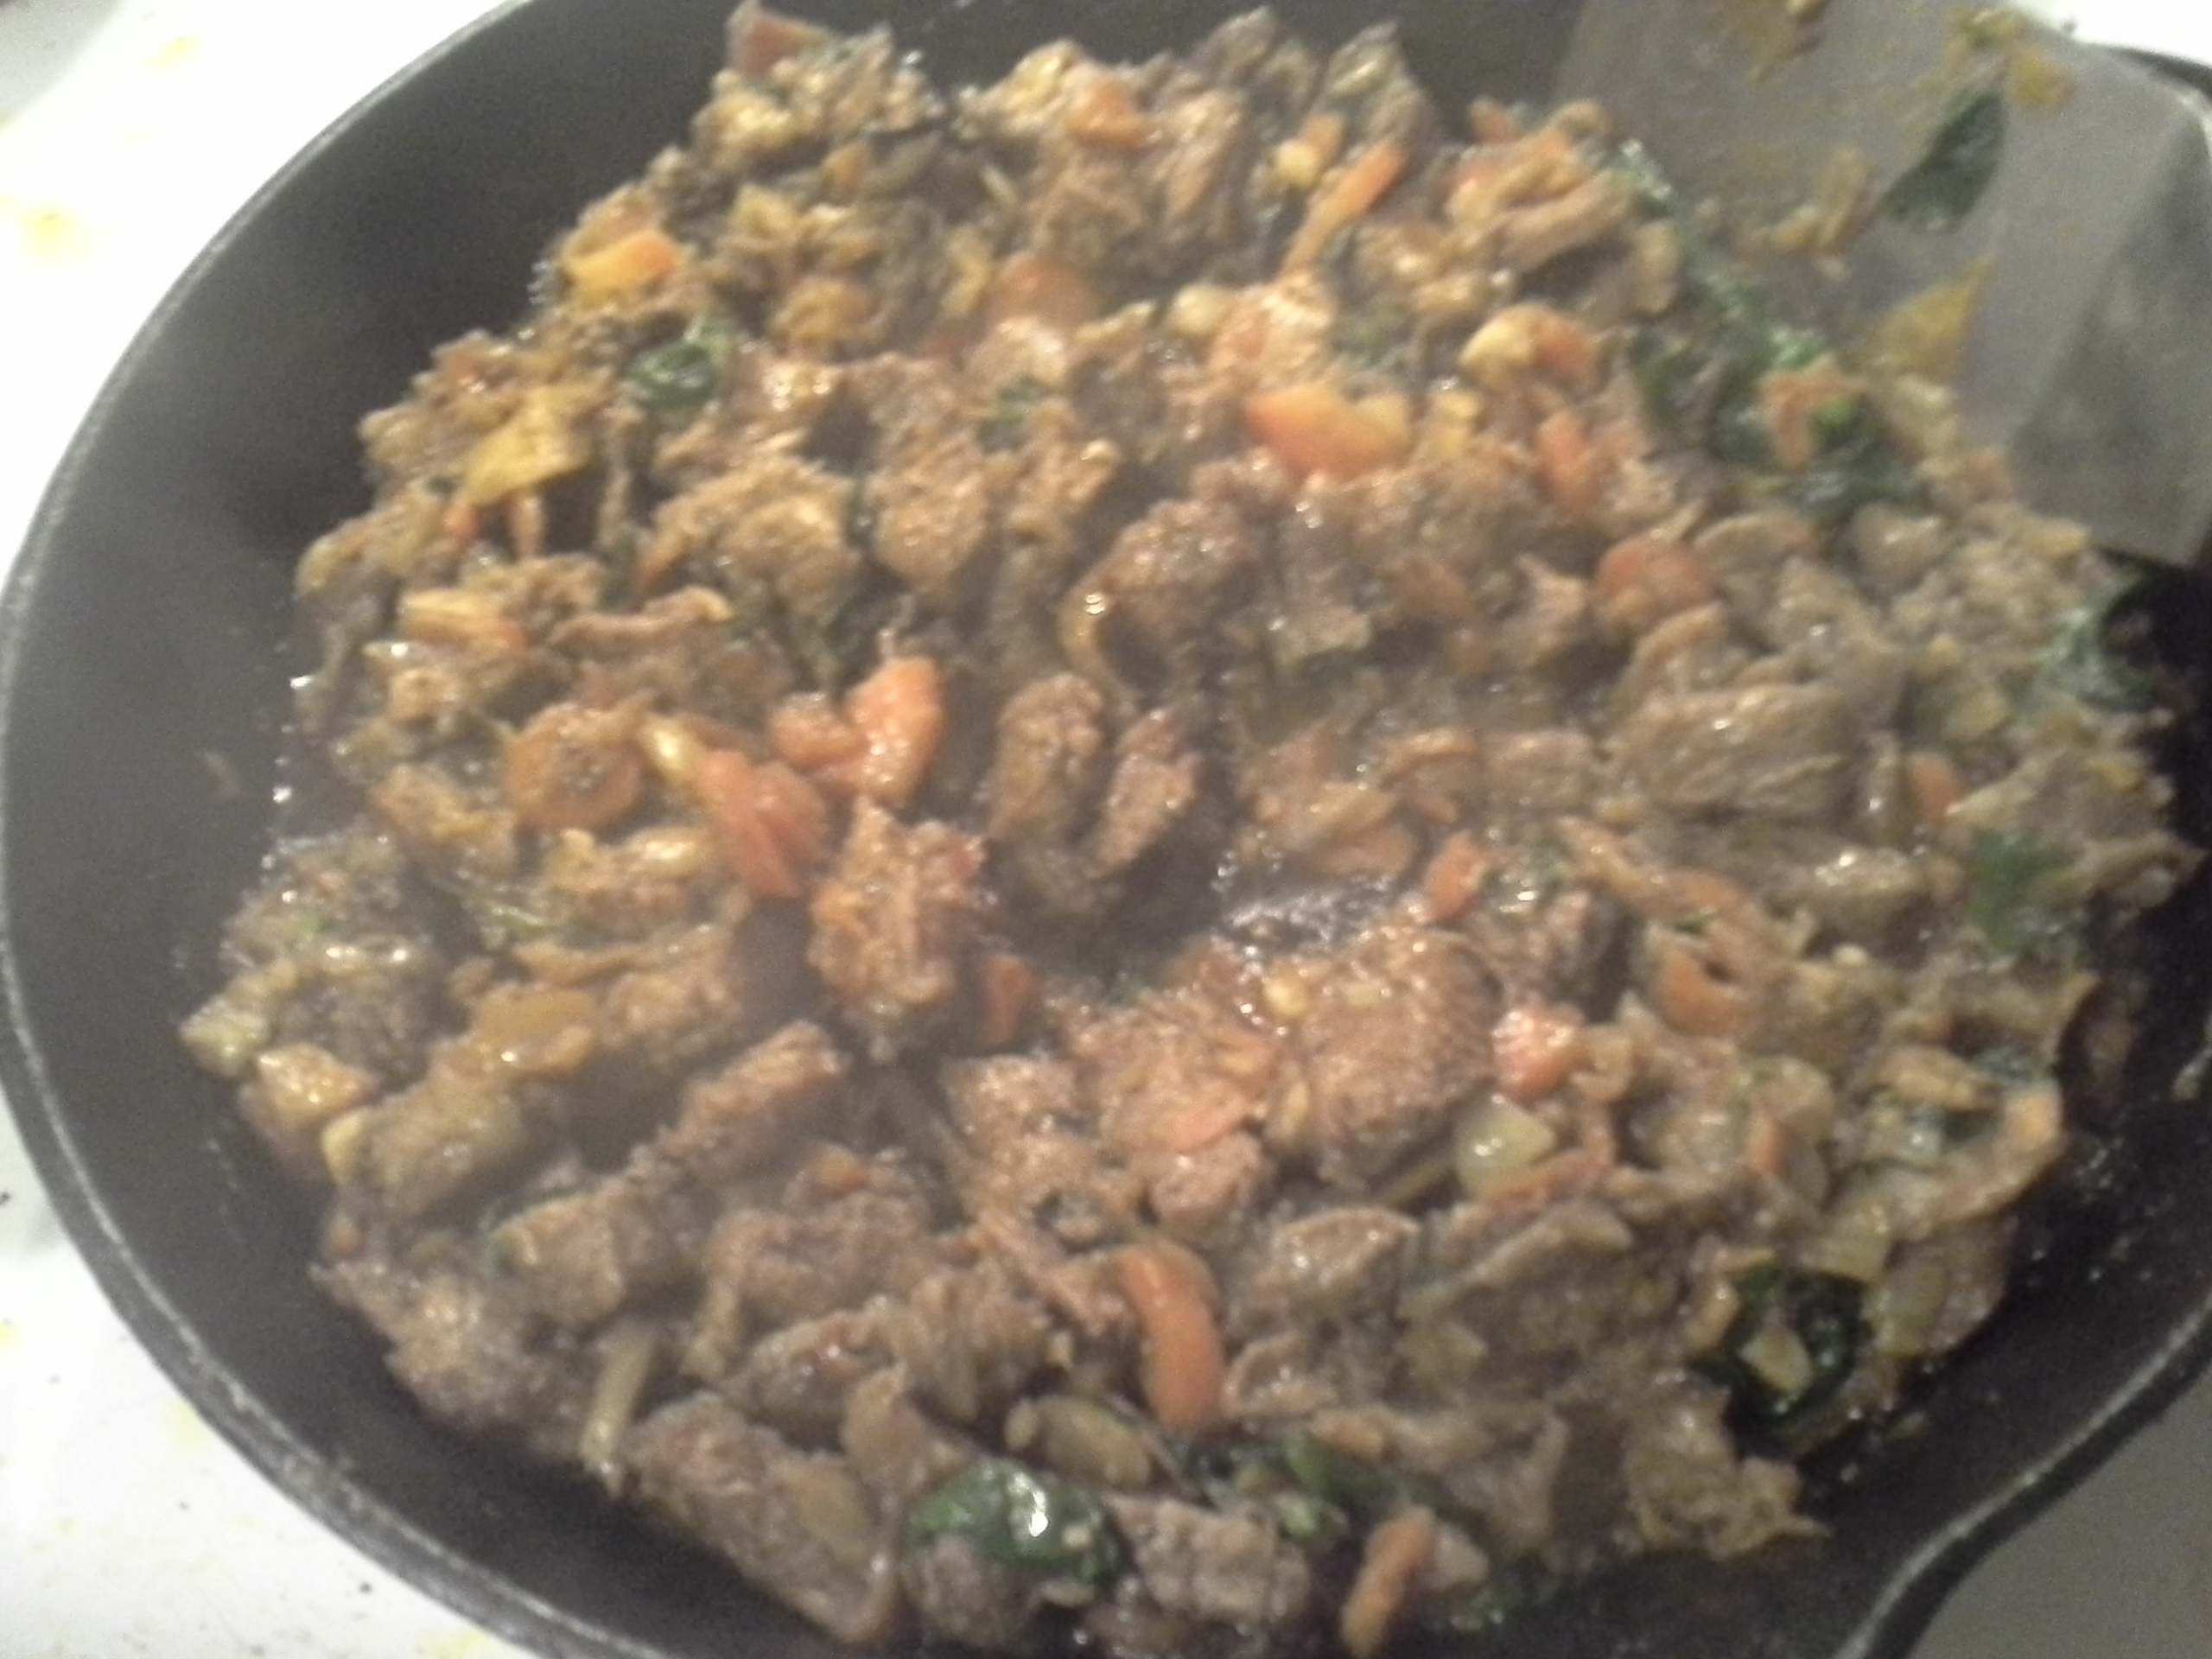 Dinner: 8:55 p.m. | 10 oz. steak, 1 carrot, 1/2 turnip, 1.25 oz. baby kale/spinach/chard mix, 2 Tbsp red palm oil, herbs & spices